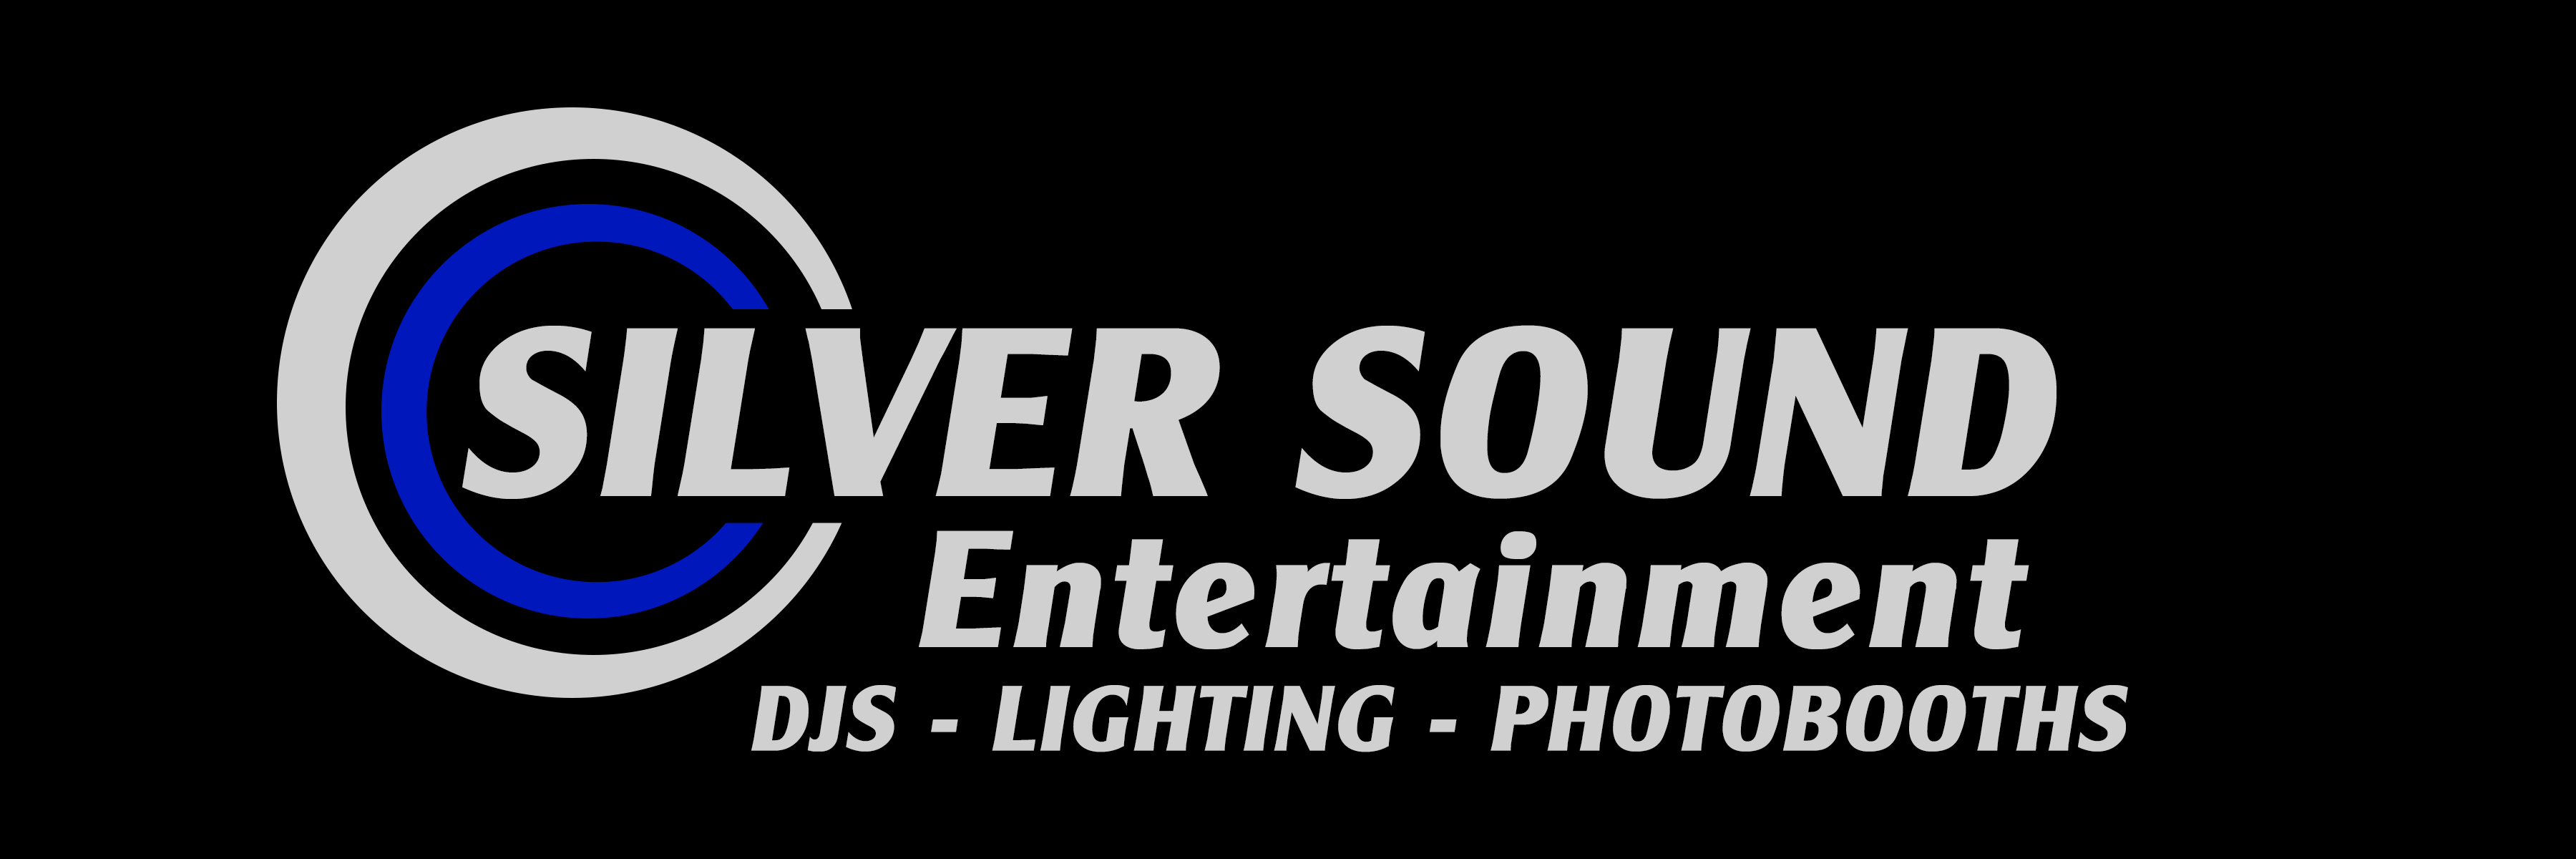 Silver Sound DJ Entertainment & Photo Booths